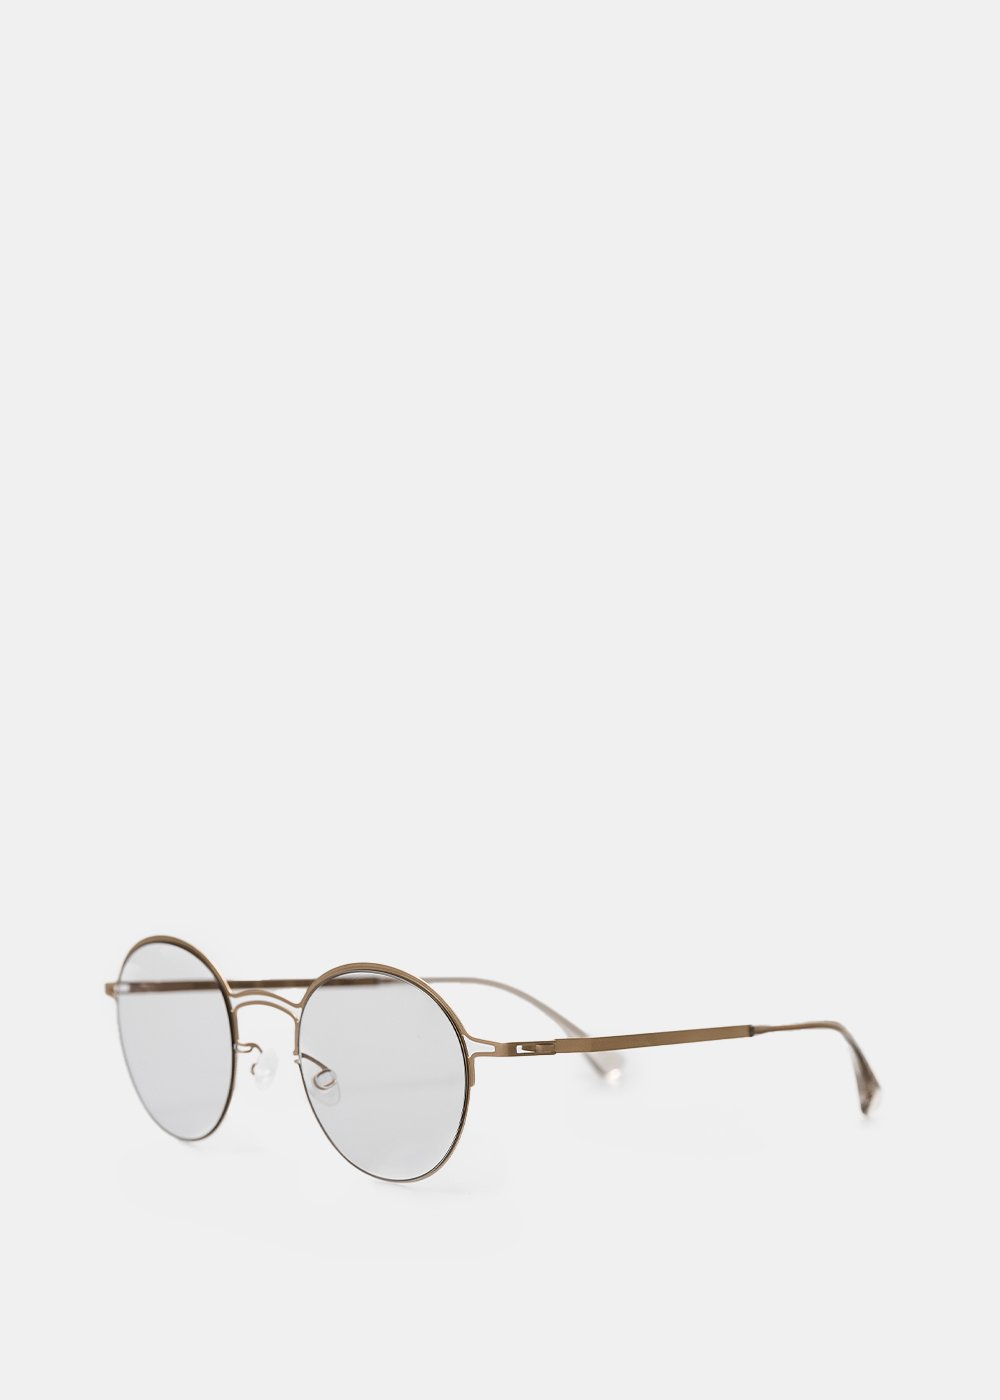 Gold & Grey Maison Margiela MMCRAFT014 Sunglasses